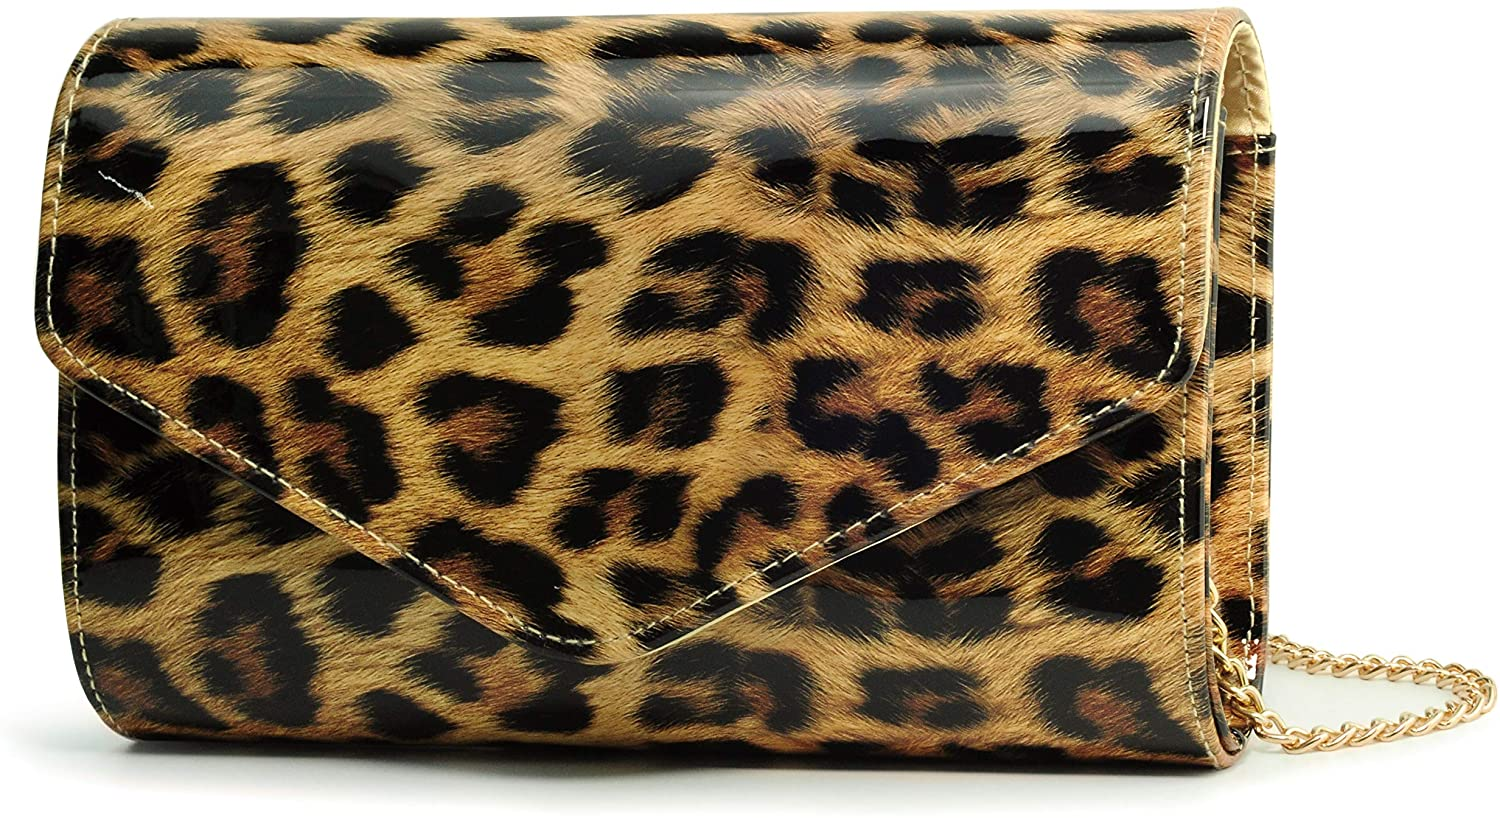 Leopard Evening Handbag Women Envelope Clutch Patent Leather Glossy Purse with Shoulder Chain Strap